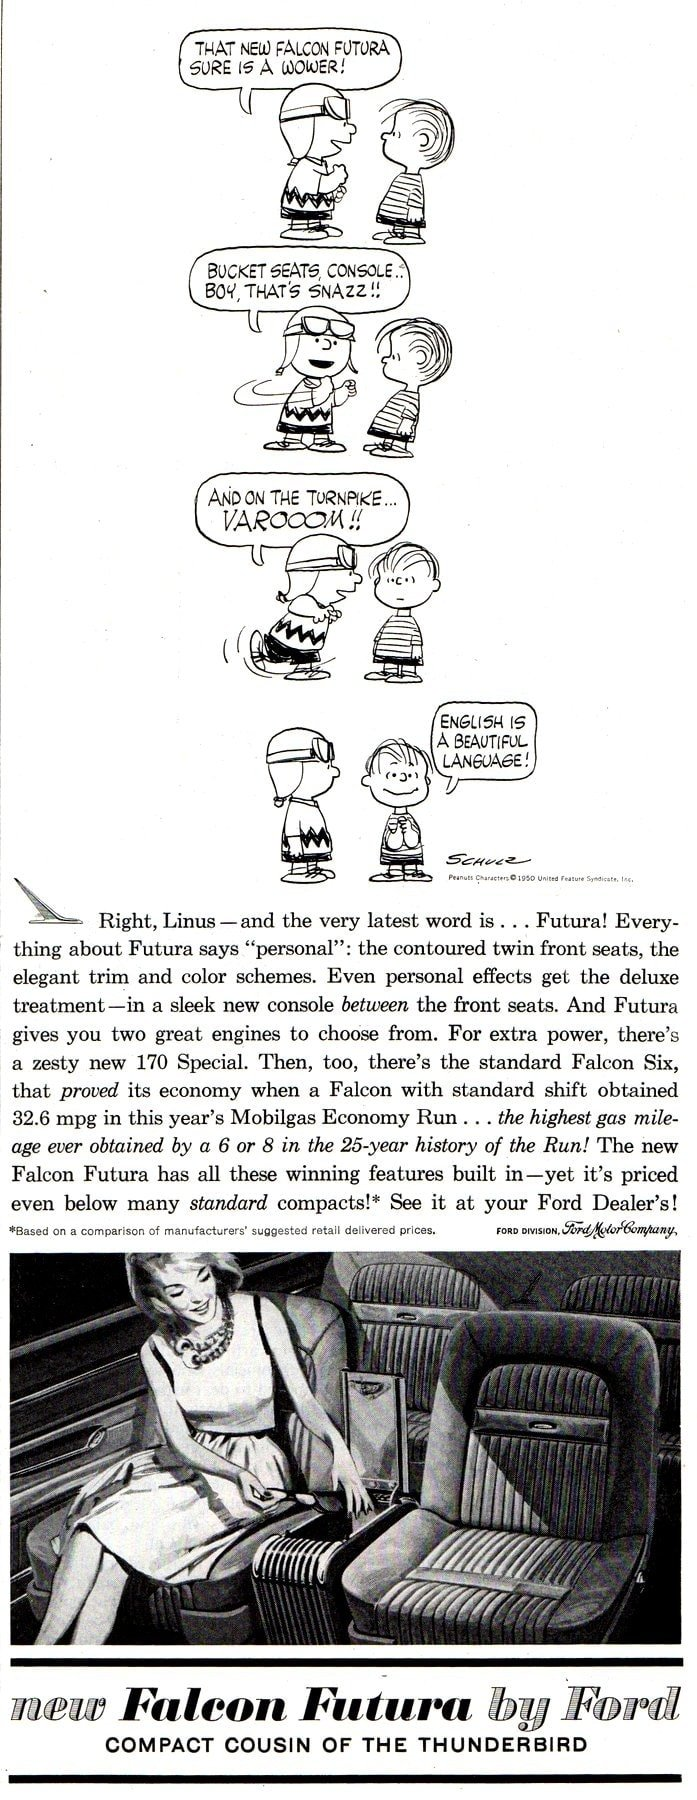 Peanuts characters - Charlie Brown & Linus for Ford Falcon Futura (1961)